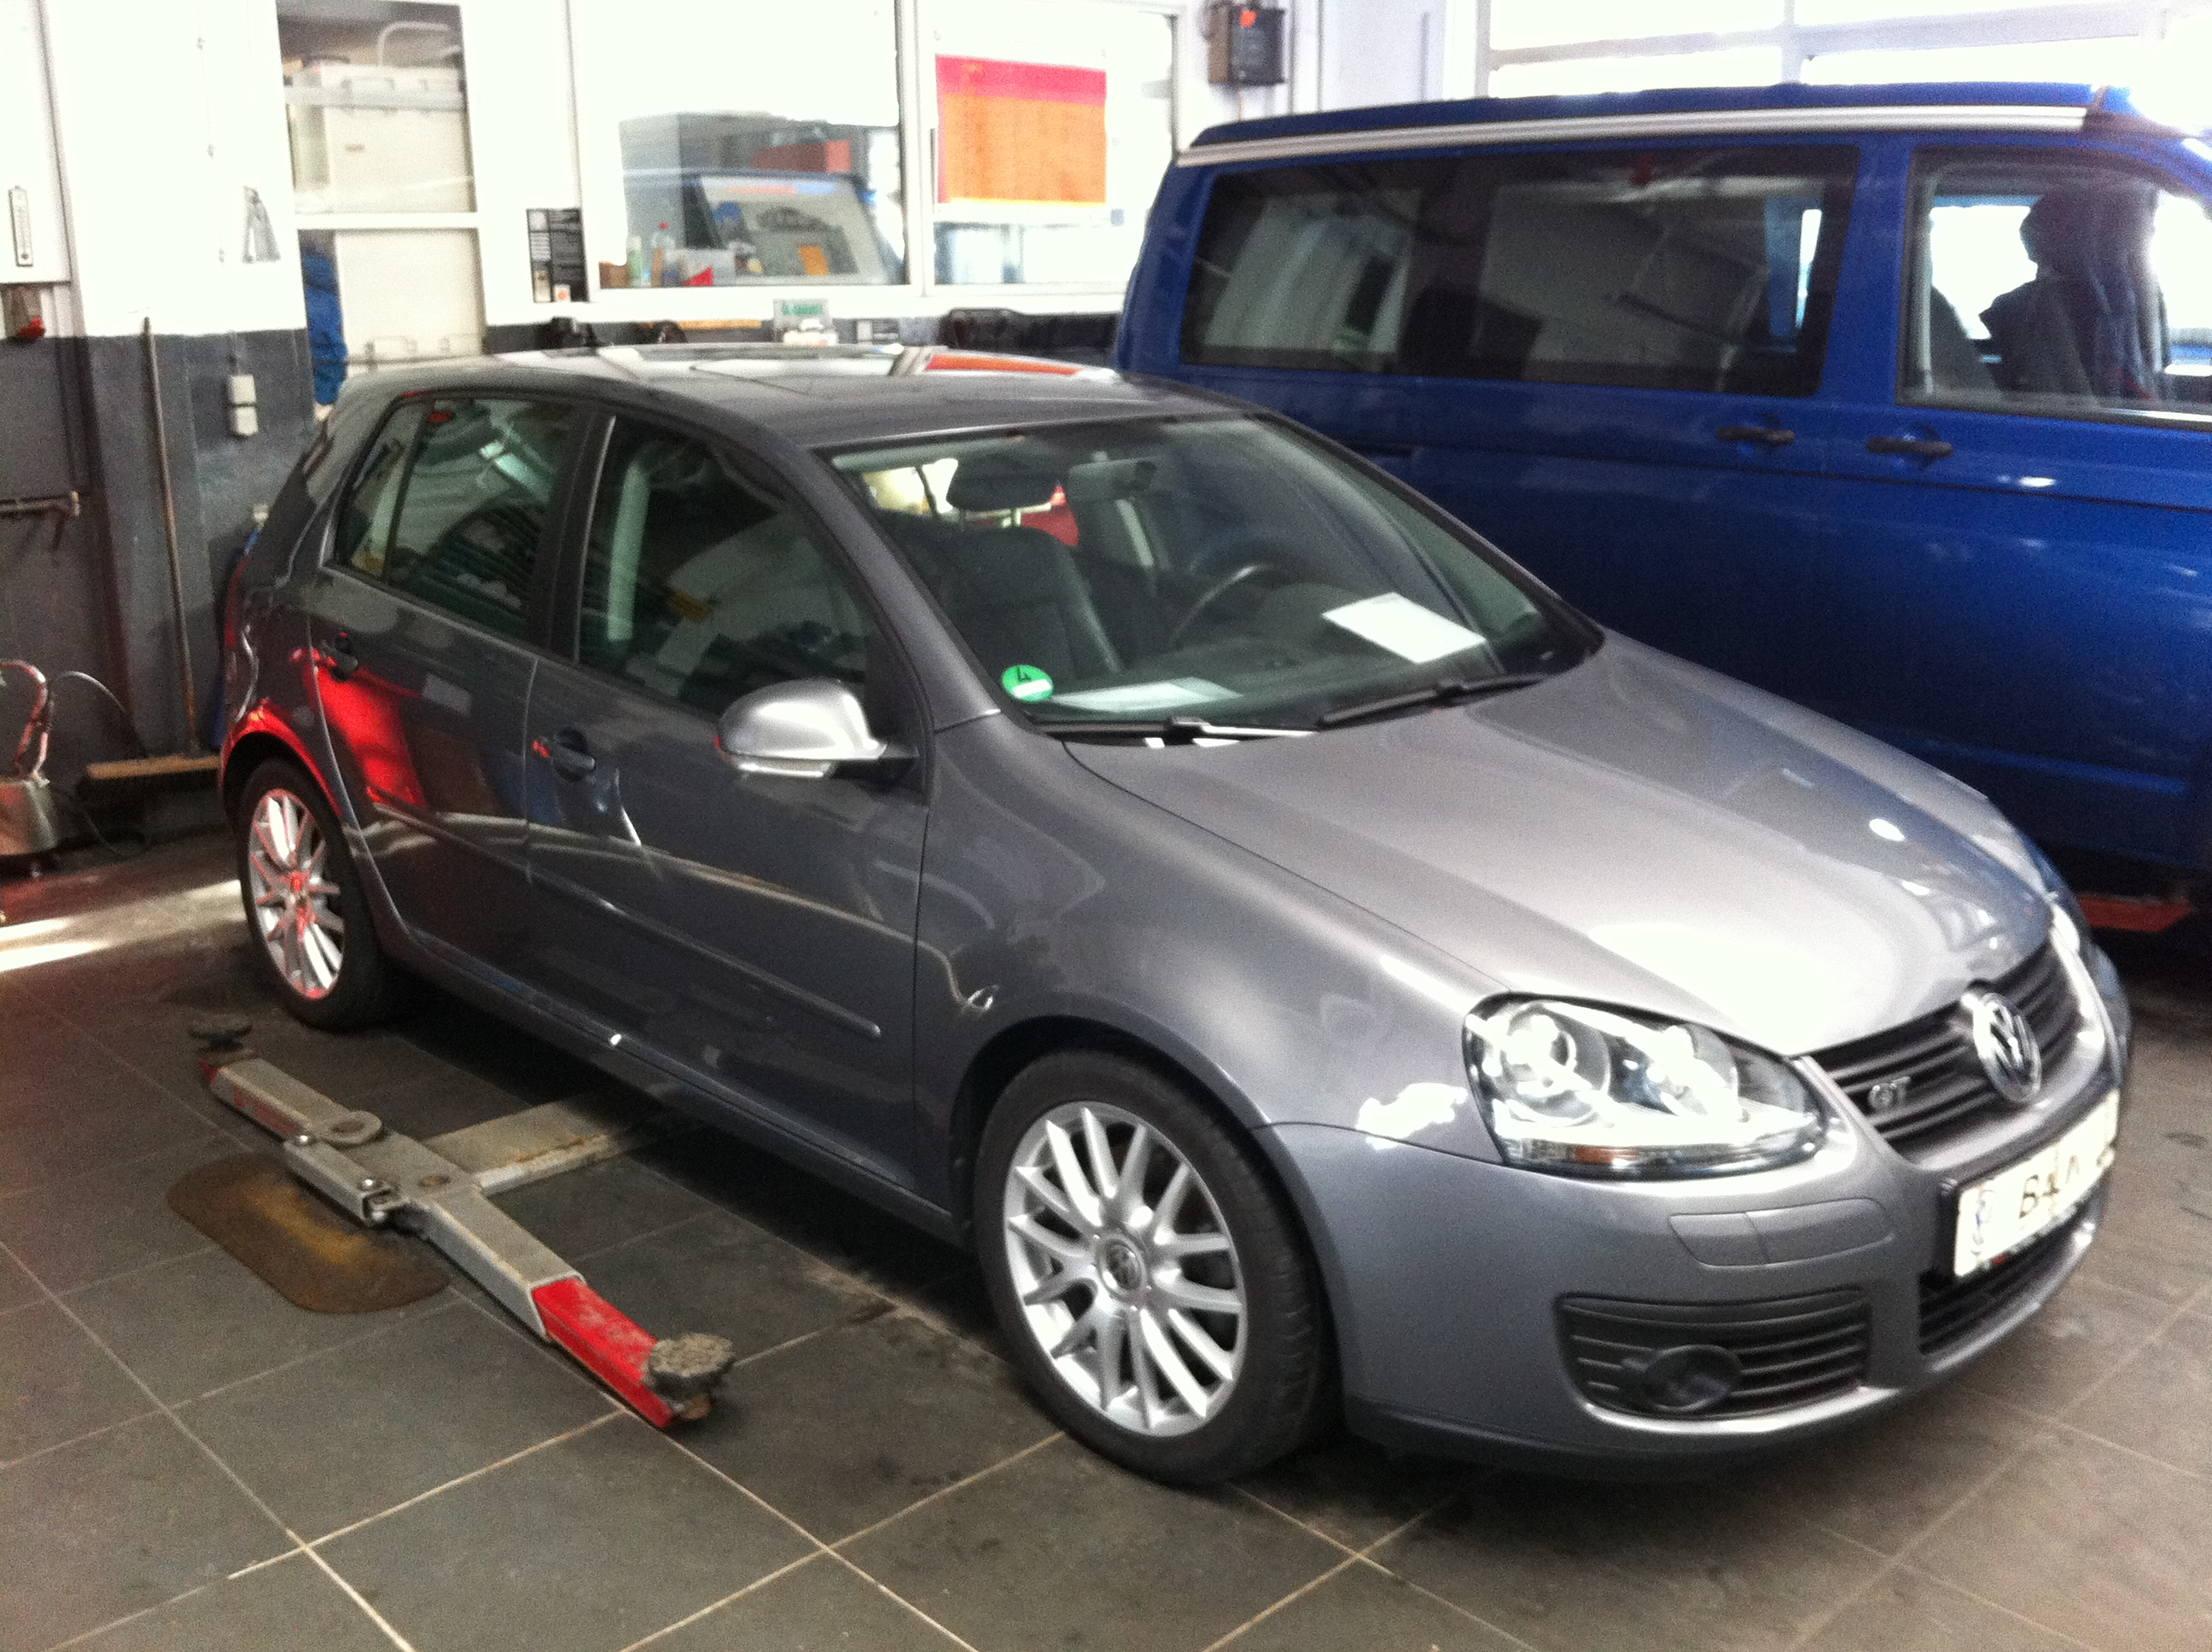 VW Golf GT 1.4 TSI photo 09